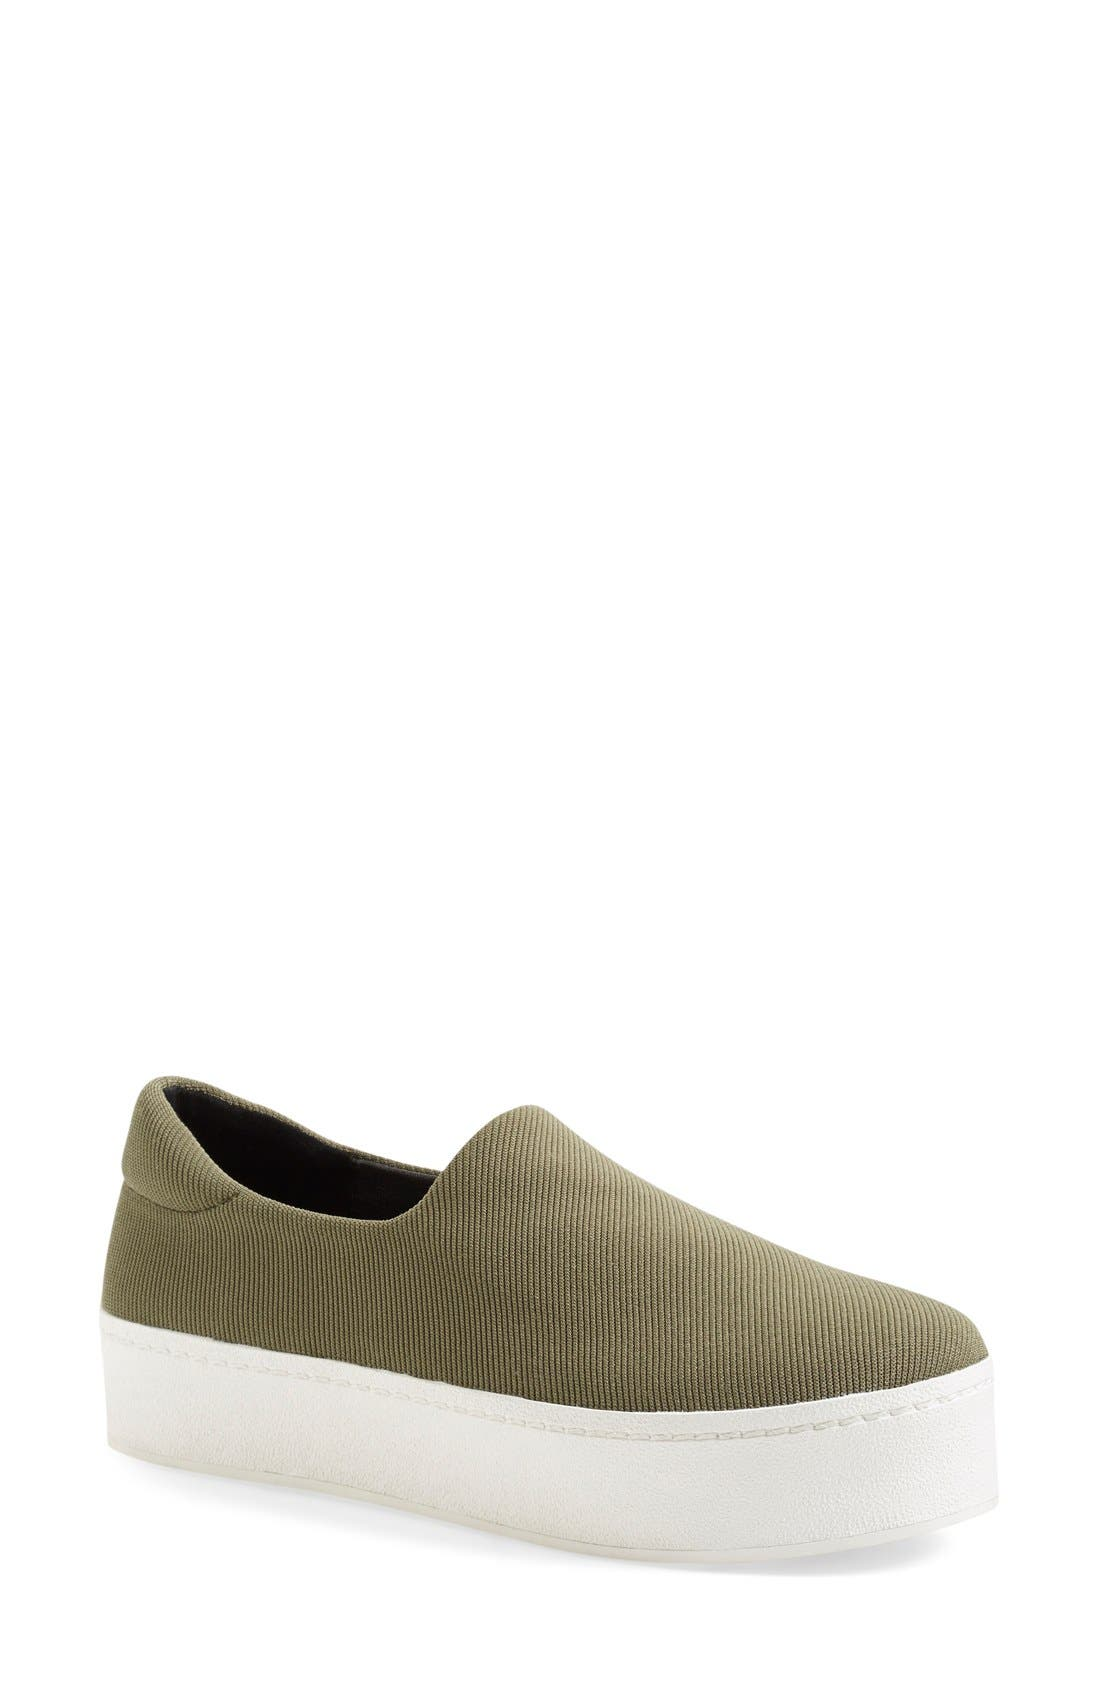 Alternate Image 1 Selected - Opening Ceremony Cici Platform Sneaker (Women)